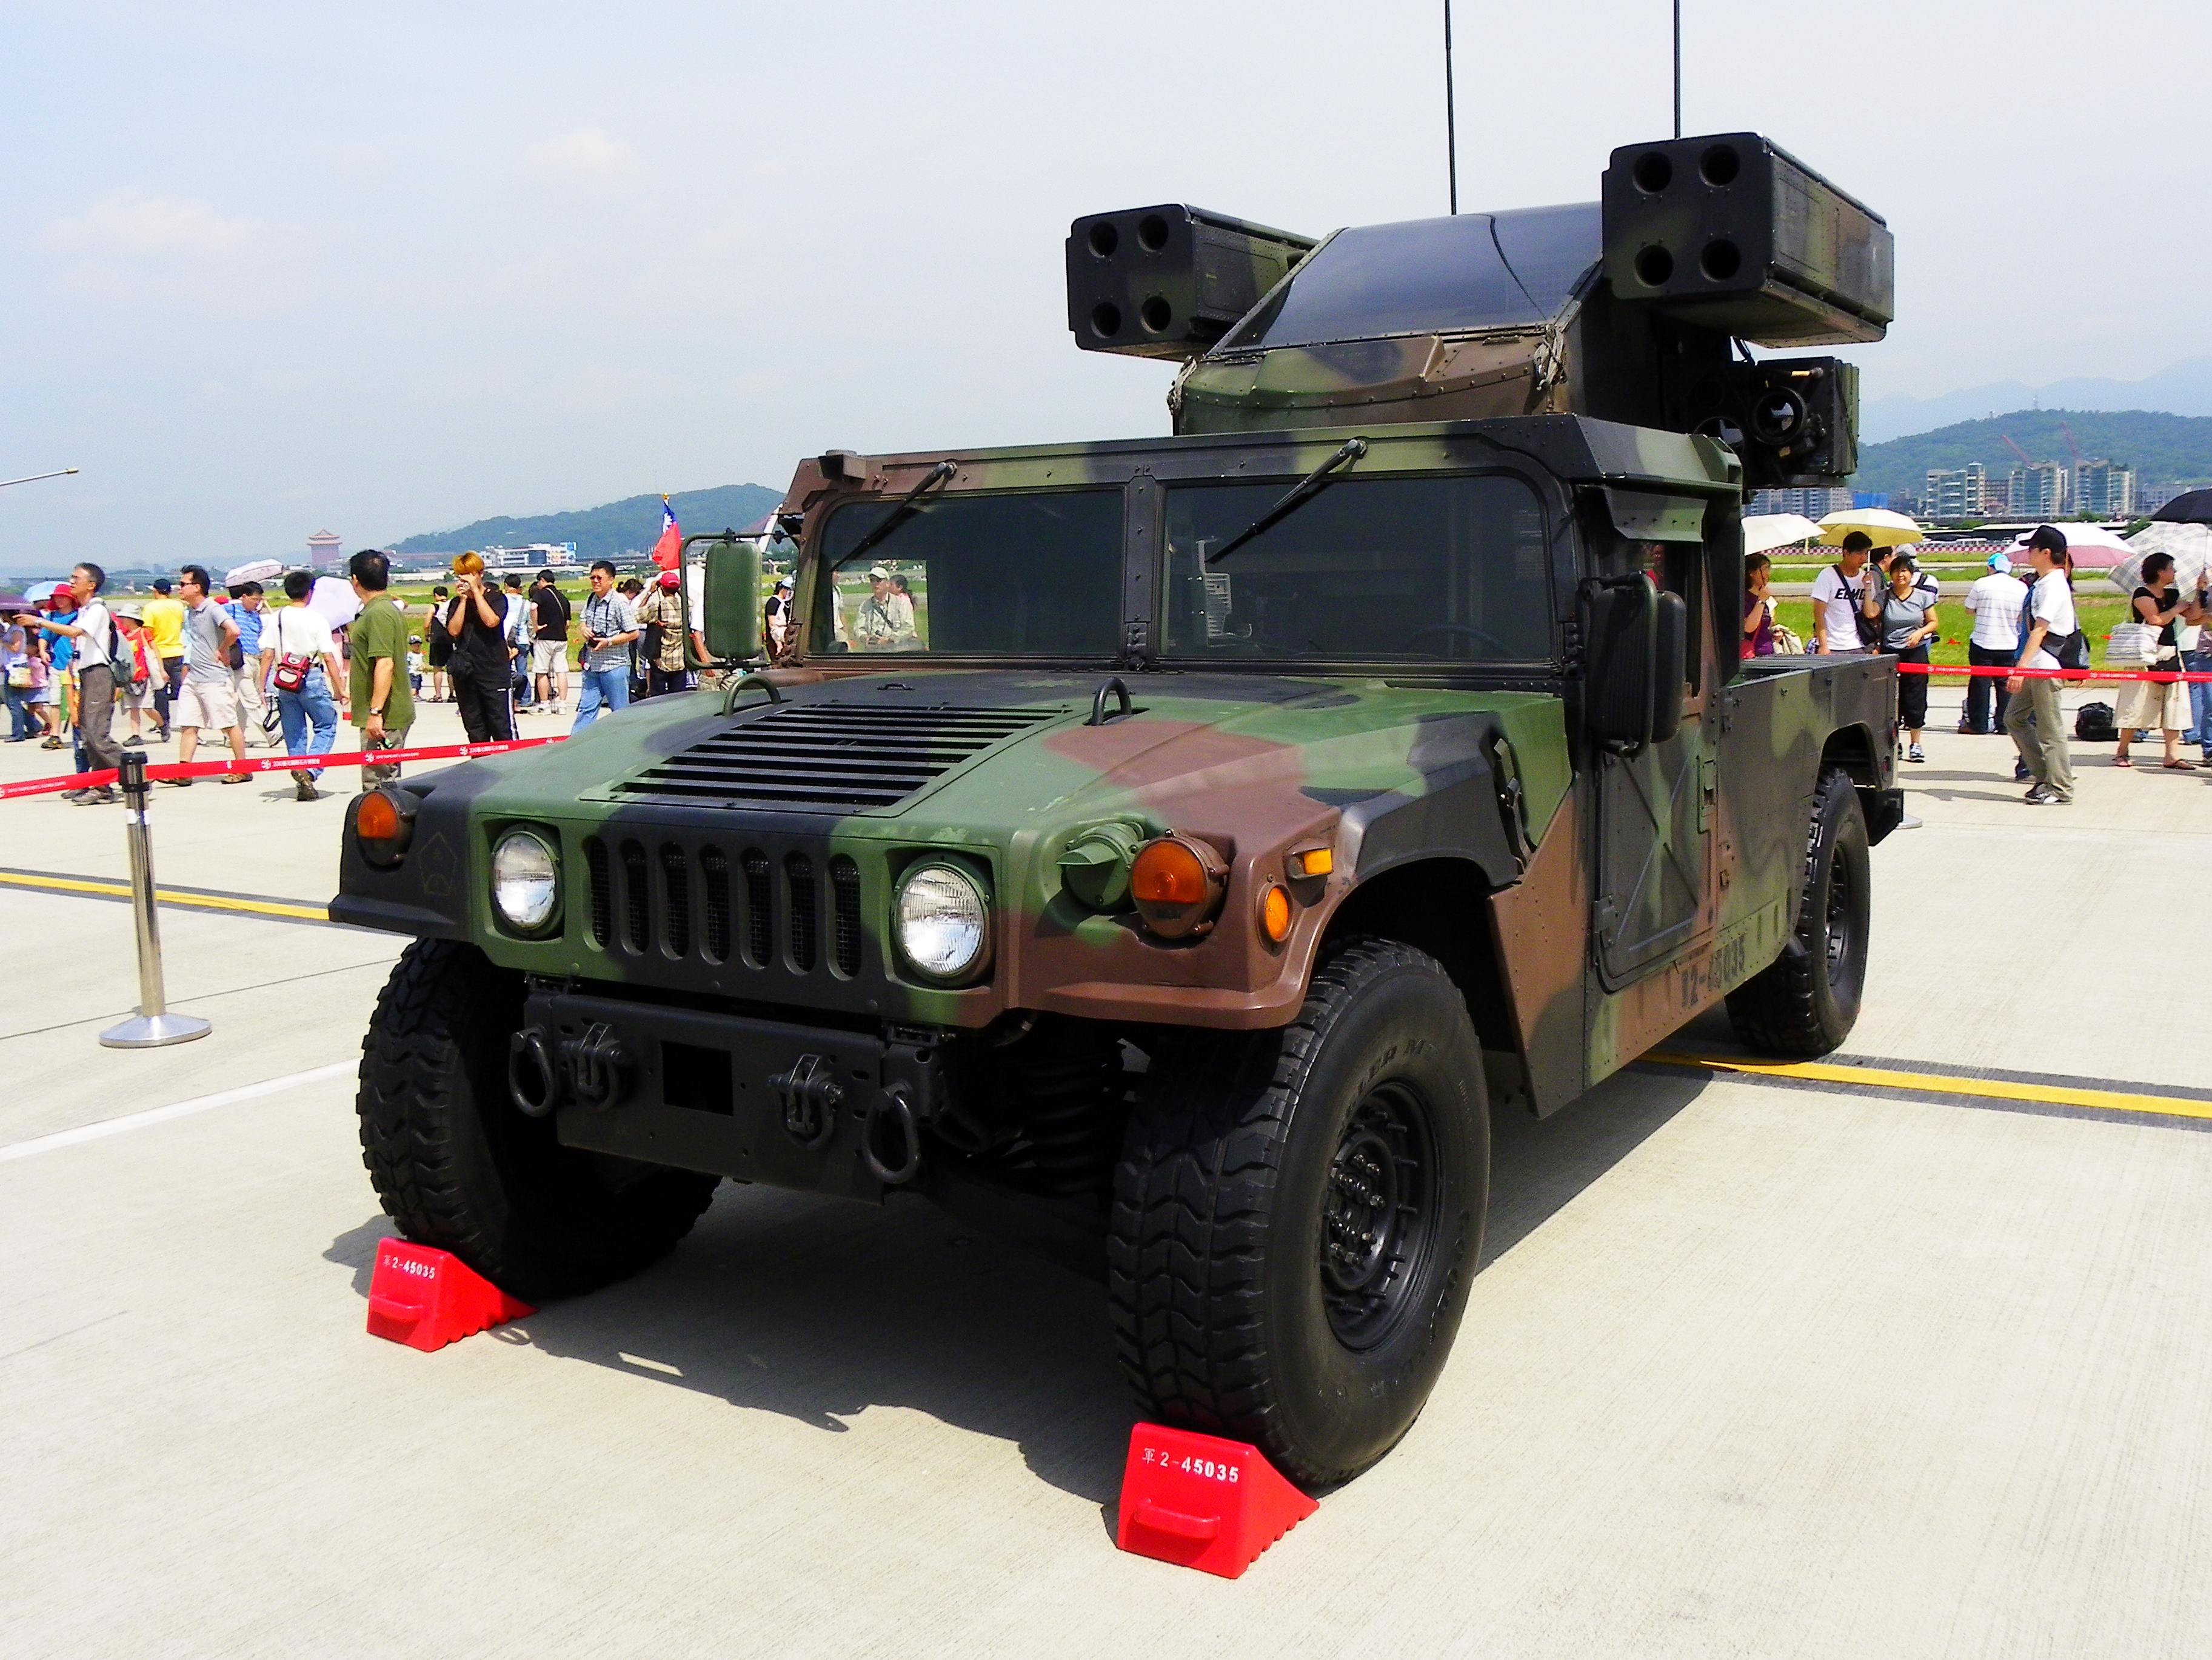 Avenger_Air_Defense_System_in_Songshan_Air_Force_Base_20110813a